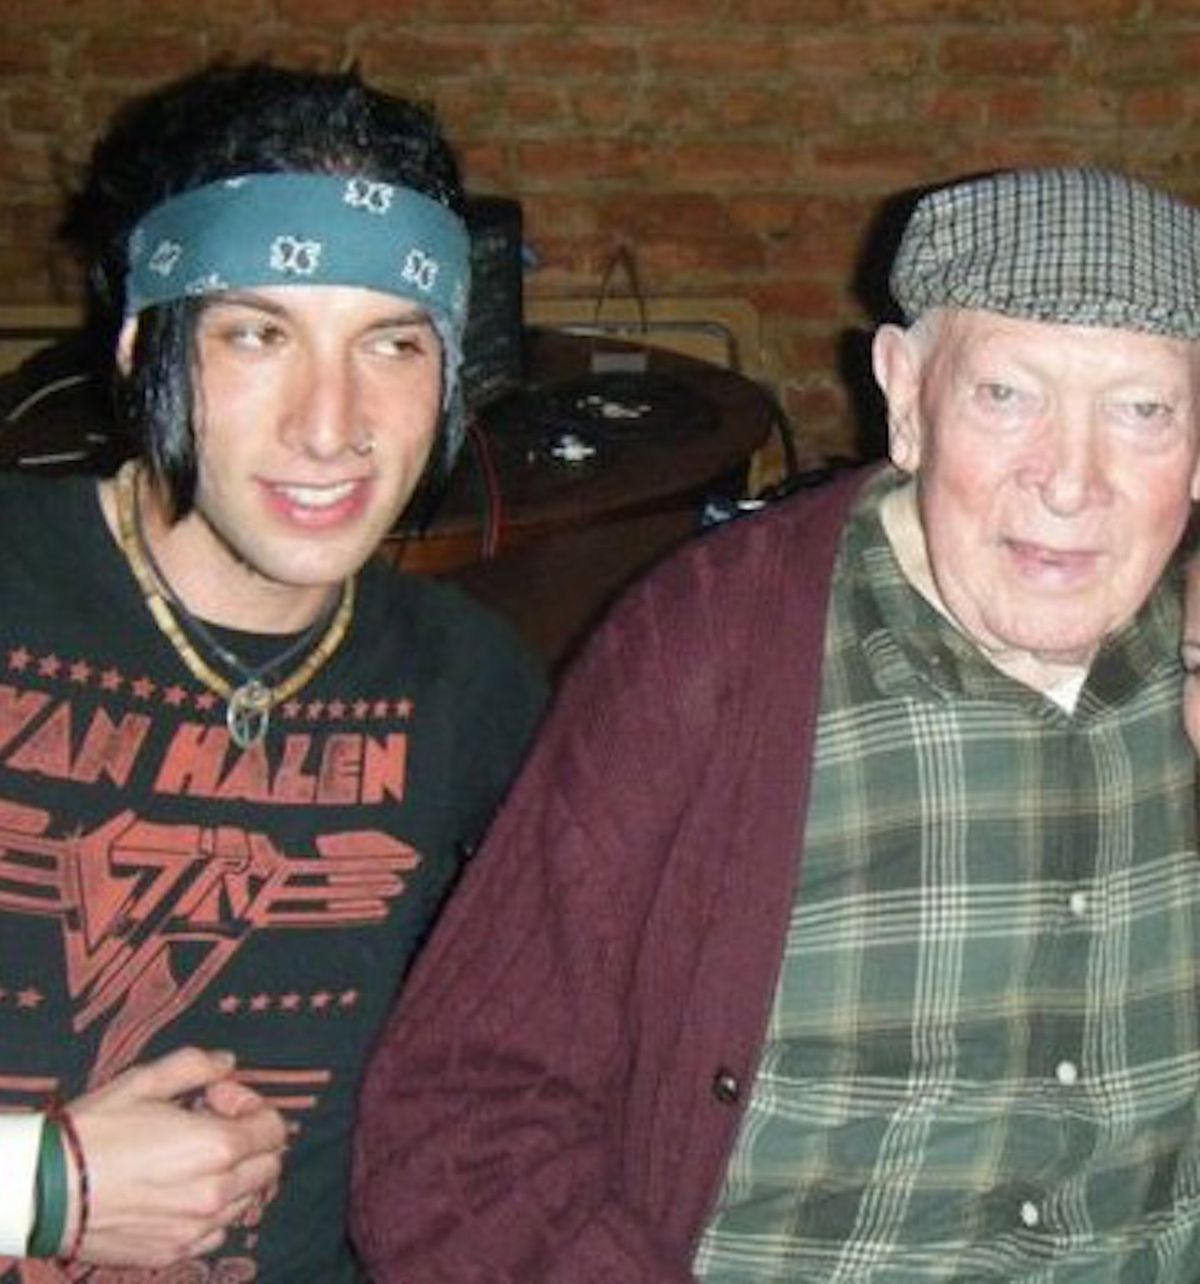 Malachy Towey (right) and his grandson, bass guitarist Martin Saldana of the band Better Than Nothing.